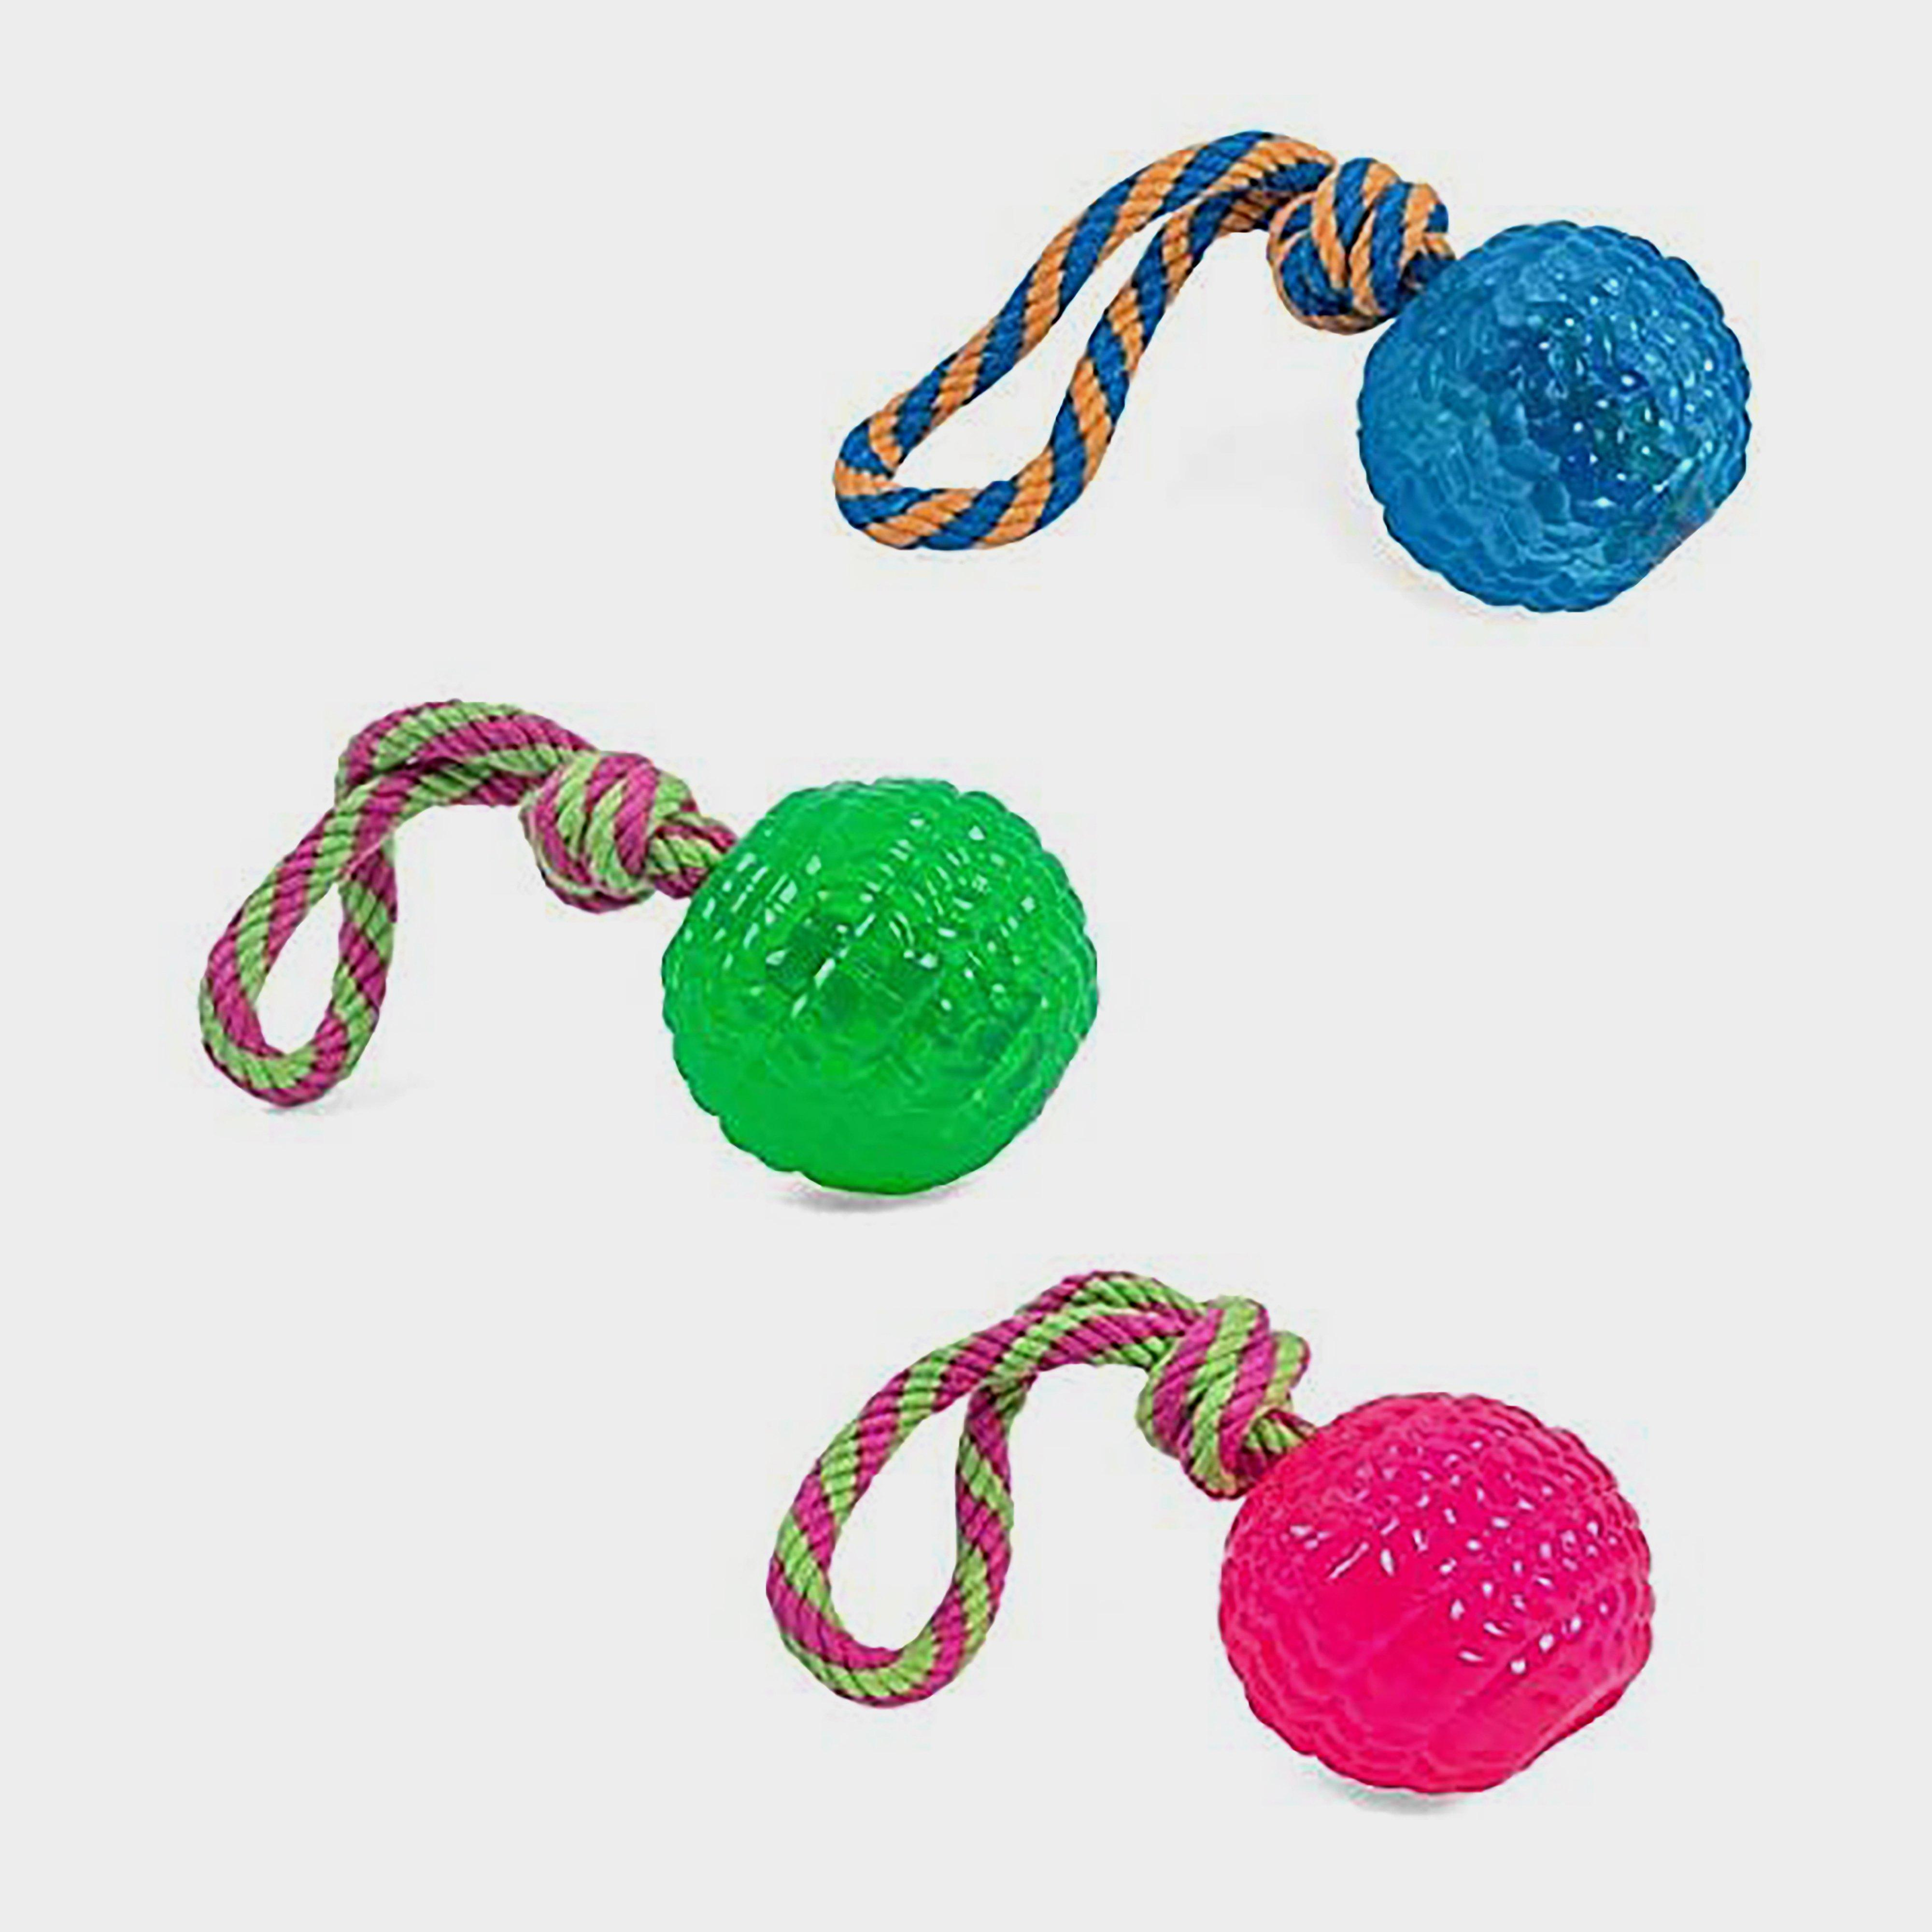 Image of Petface Toyz Rope Bouncy Ball - Assorted/Assorted, ASSORTED/ASSORTED